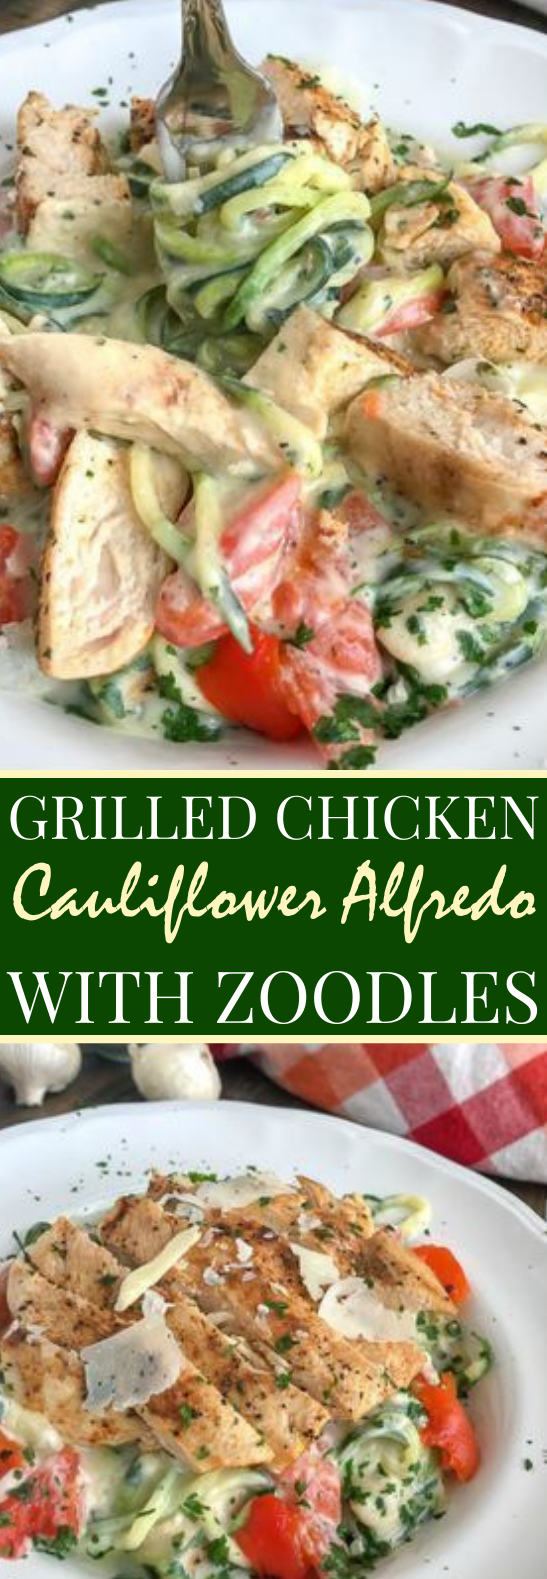 Grilled Chicken Cauliflower Alfredo with Zucchini Noodles #healthy #recipes #lowcarb #dinner #diet